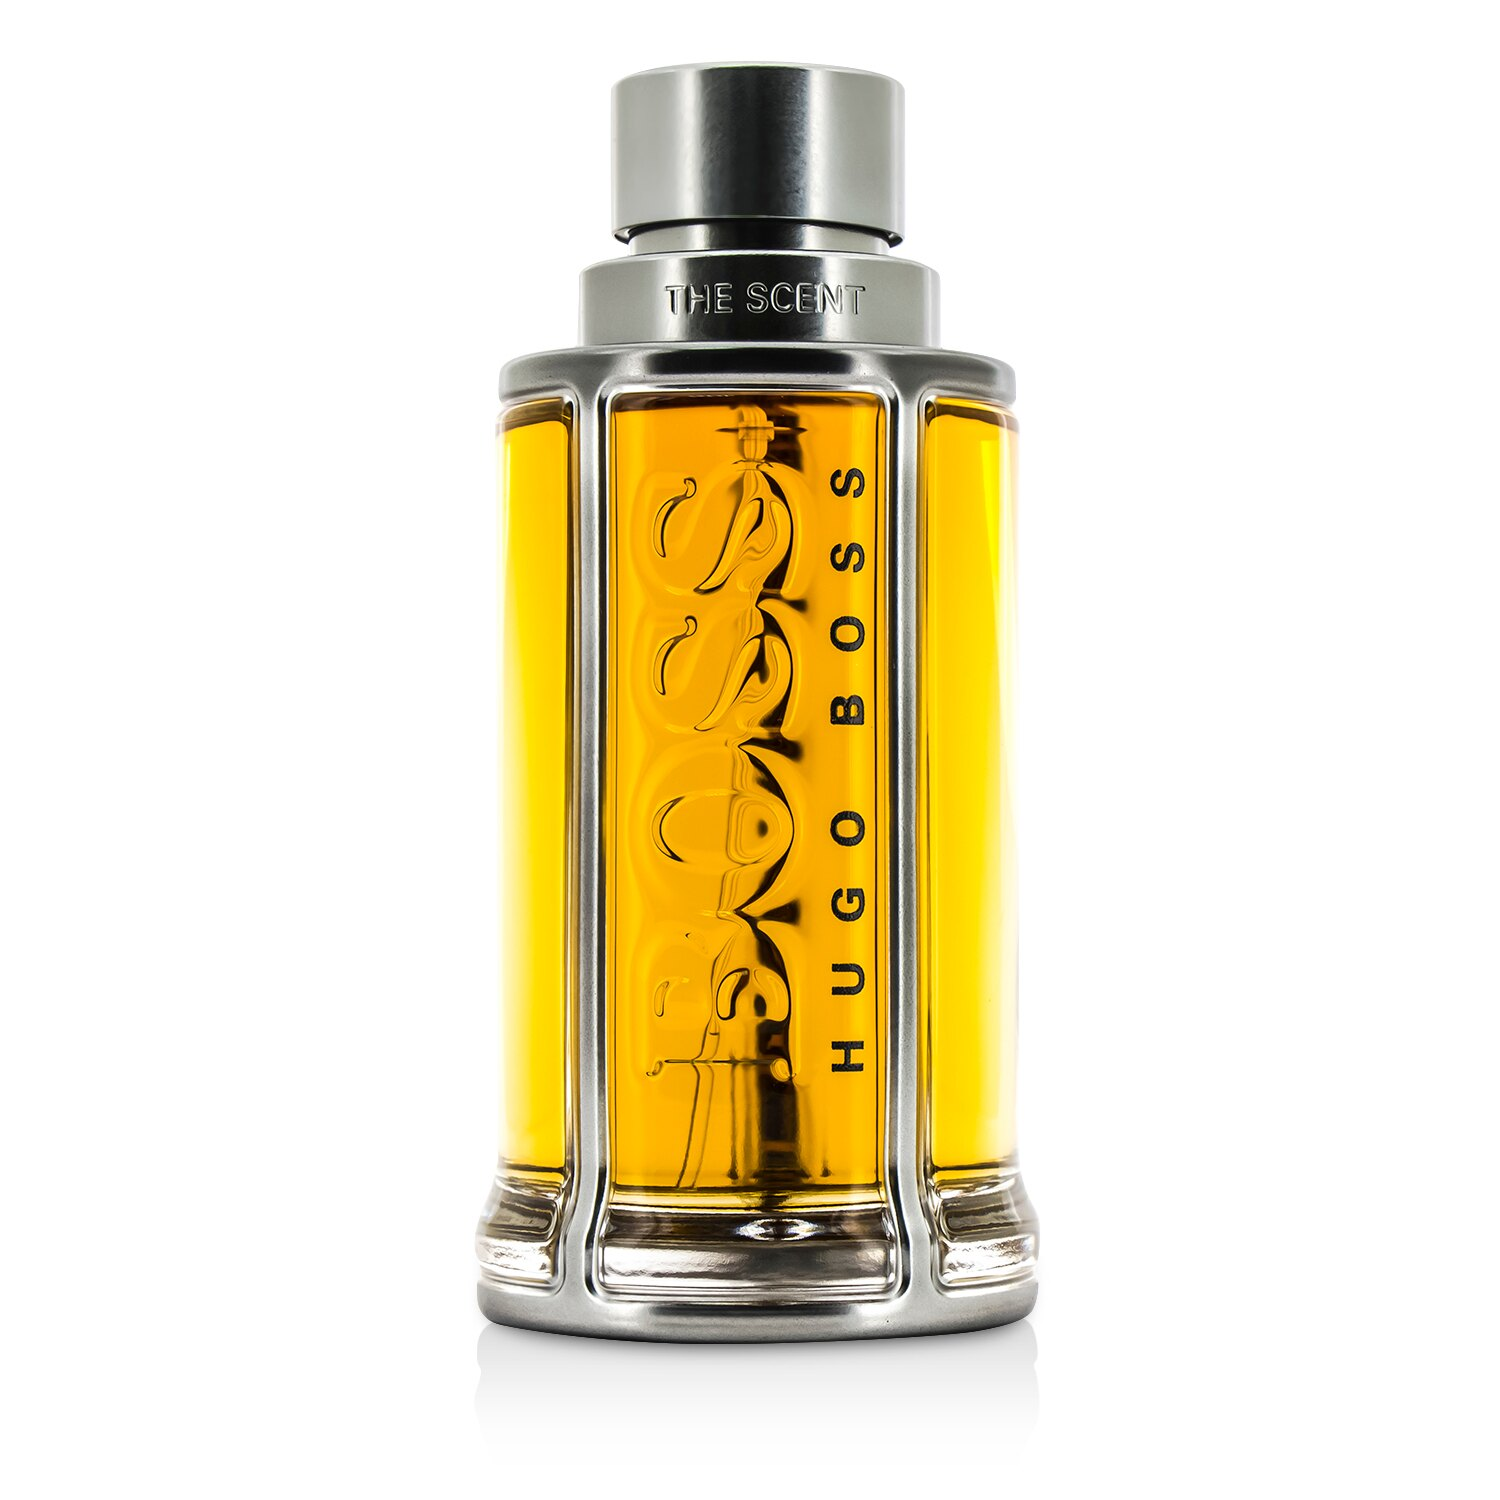 HUGO BOSS The Scent  紳士淡香水 100ml